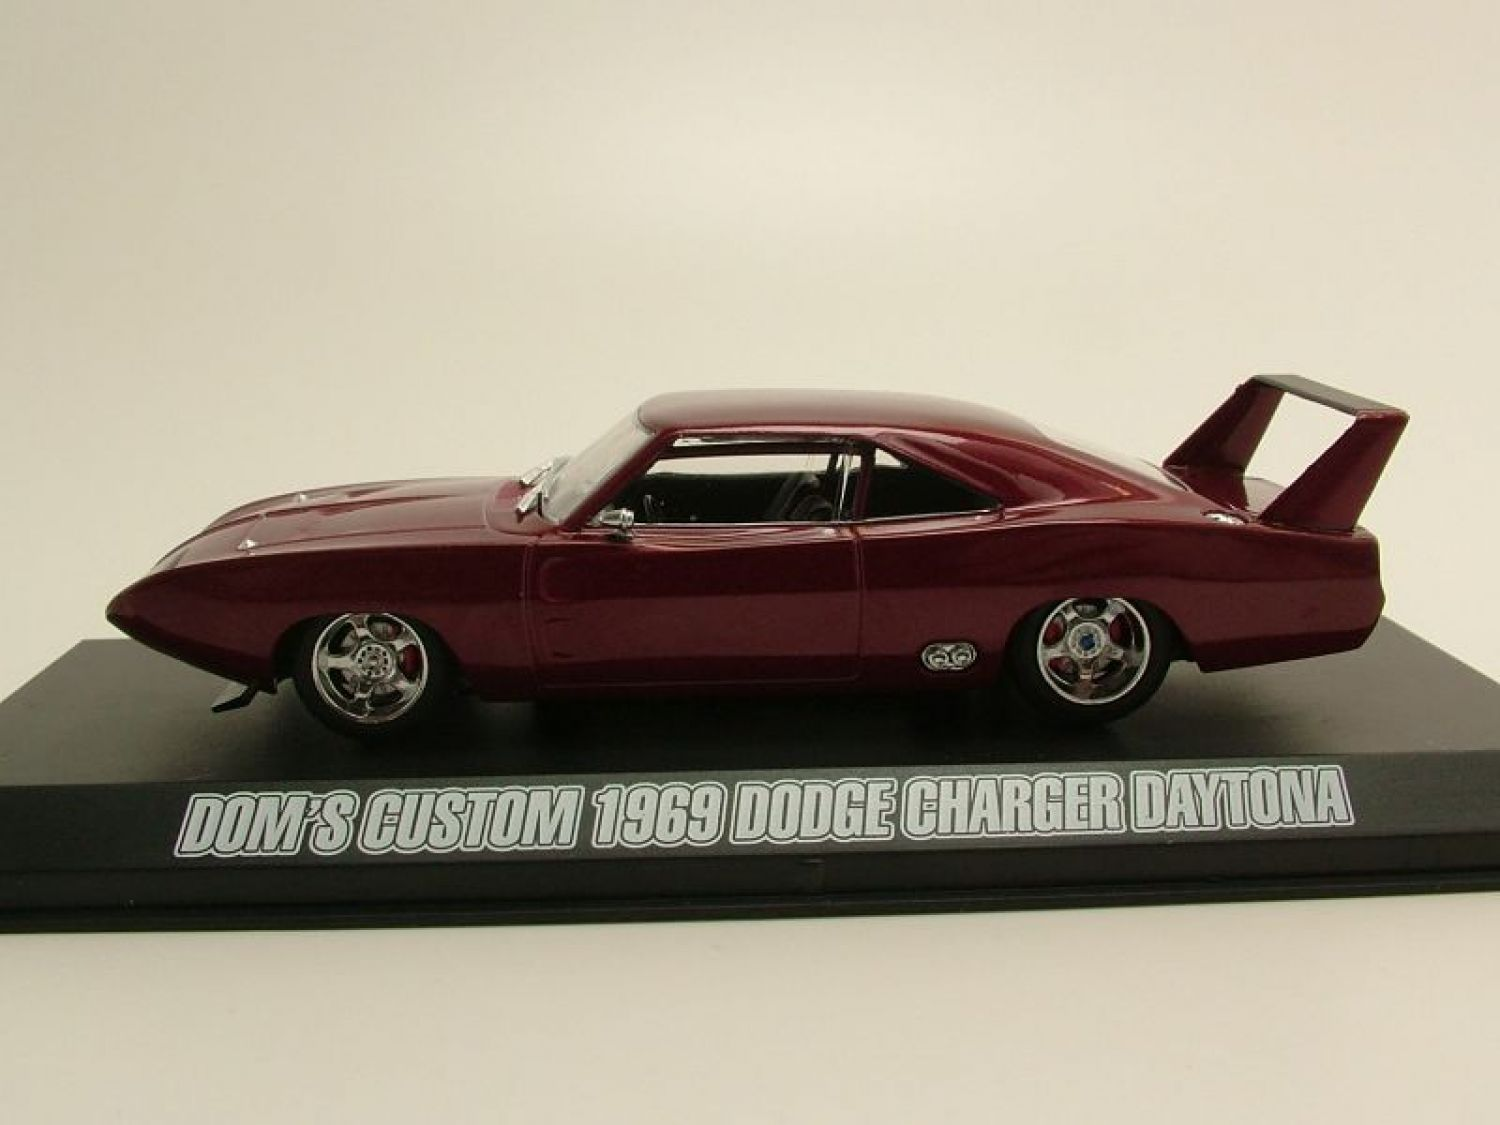 Greenlight 1 43 Dom S Custom 1969 Dodge Charger Daytona Fast Furious 6 86221 Diecast Cars Trucks And Vans Diecast Cars Trucks And Vans Toys Games